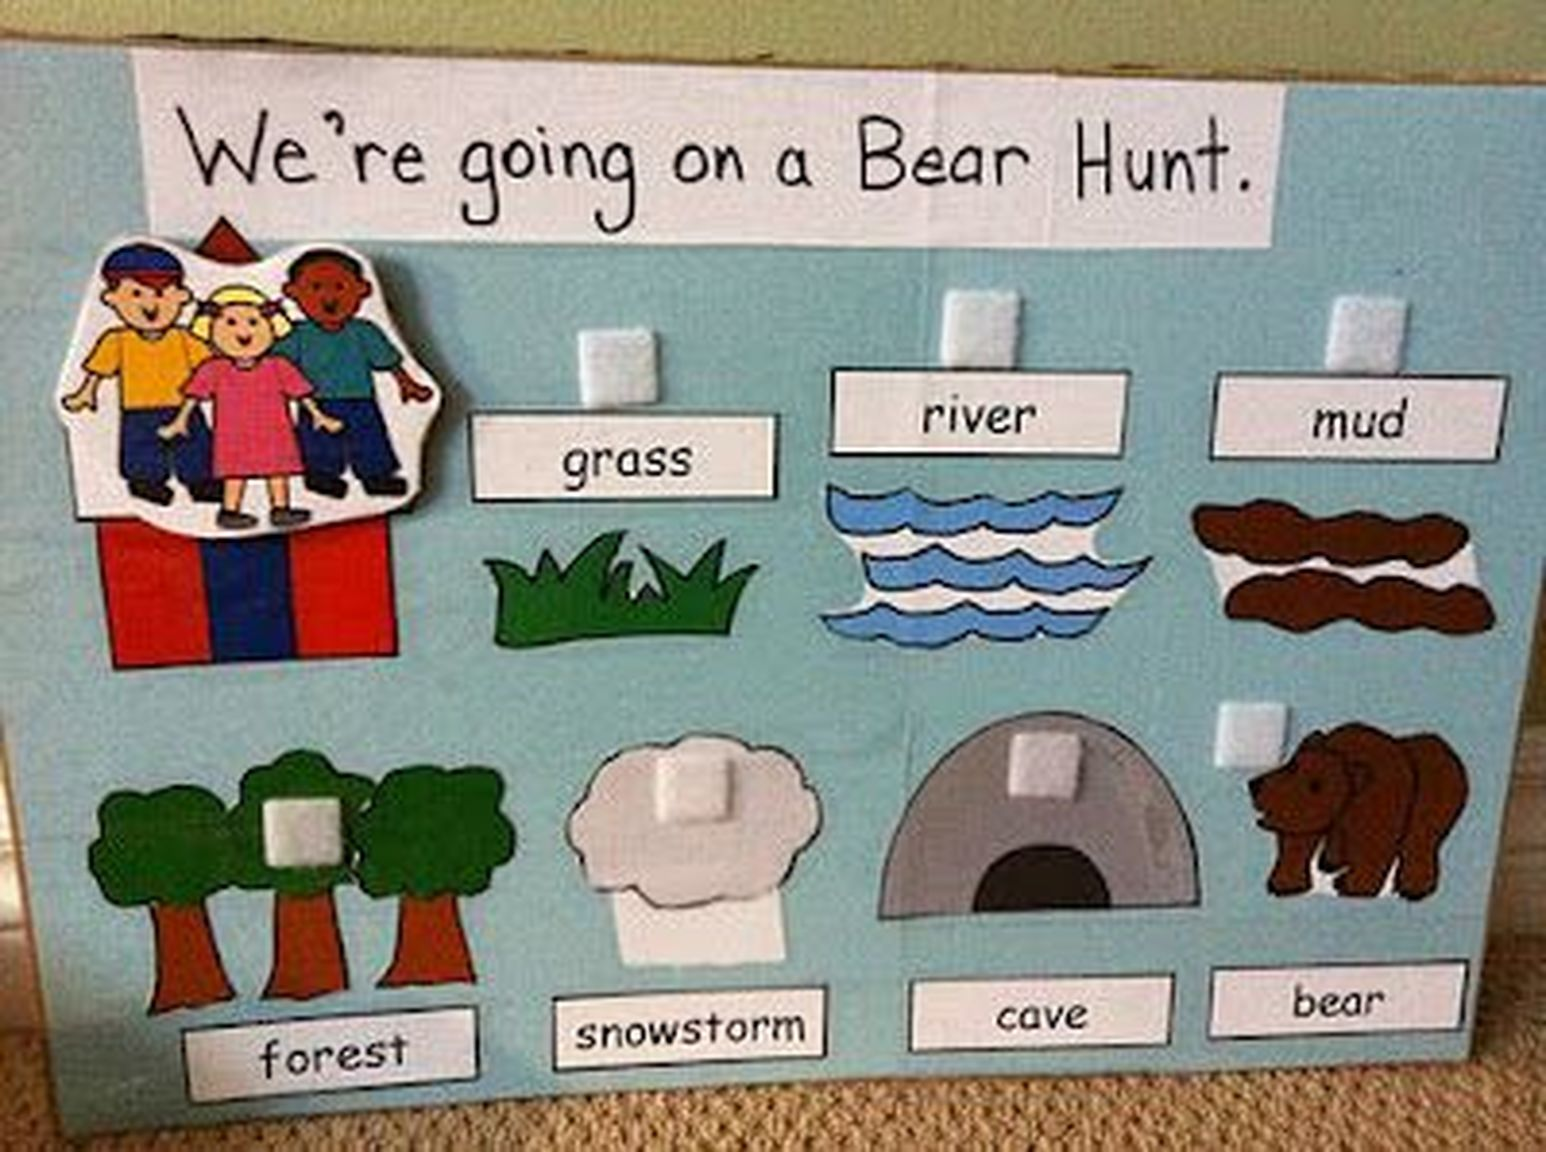 We're going on a bear hunt 2.jpg